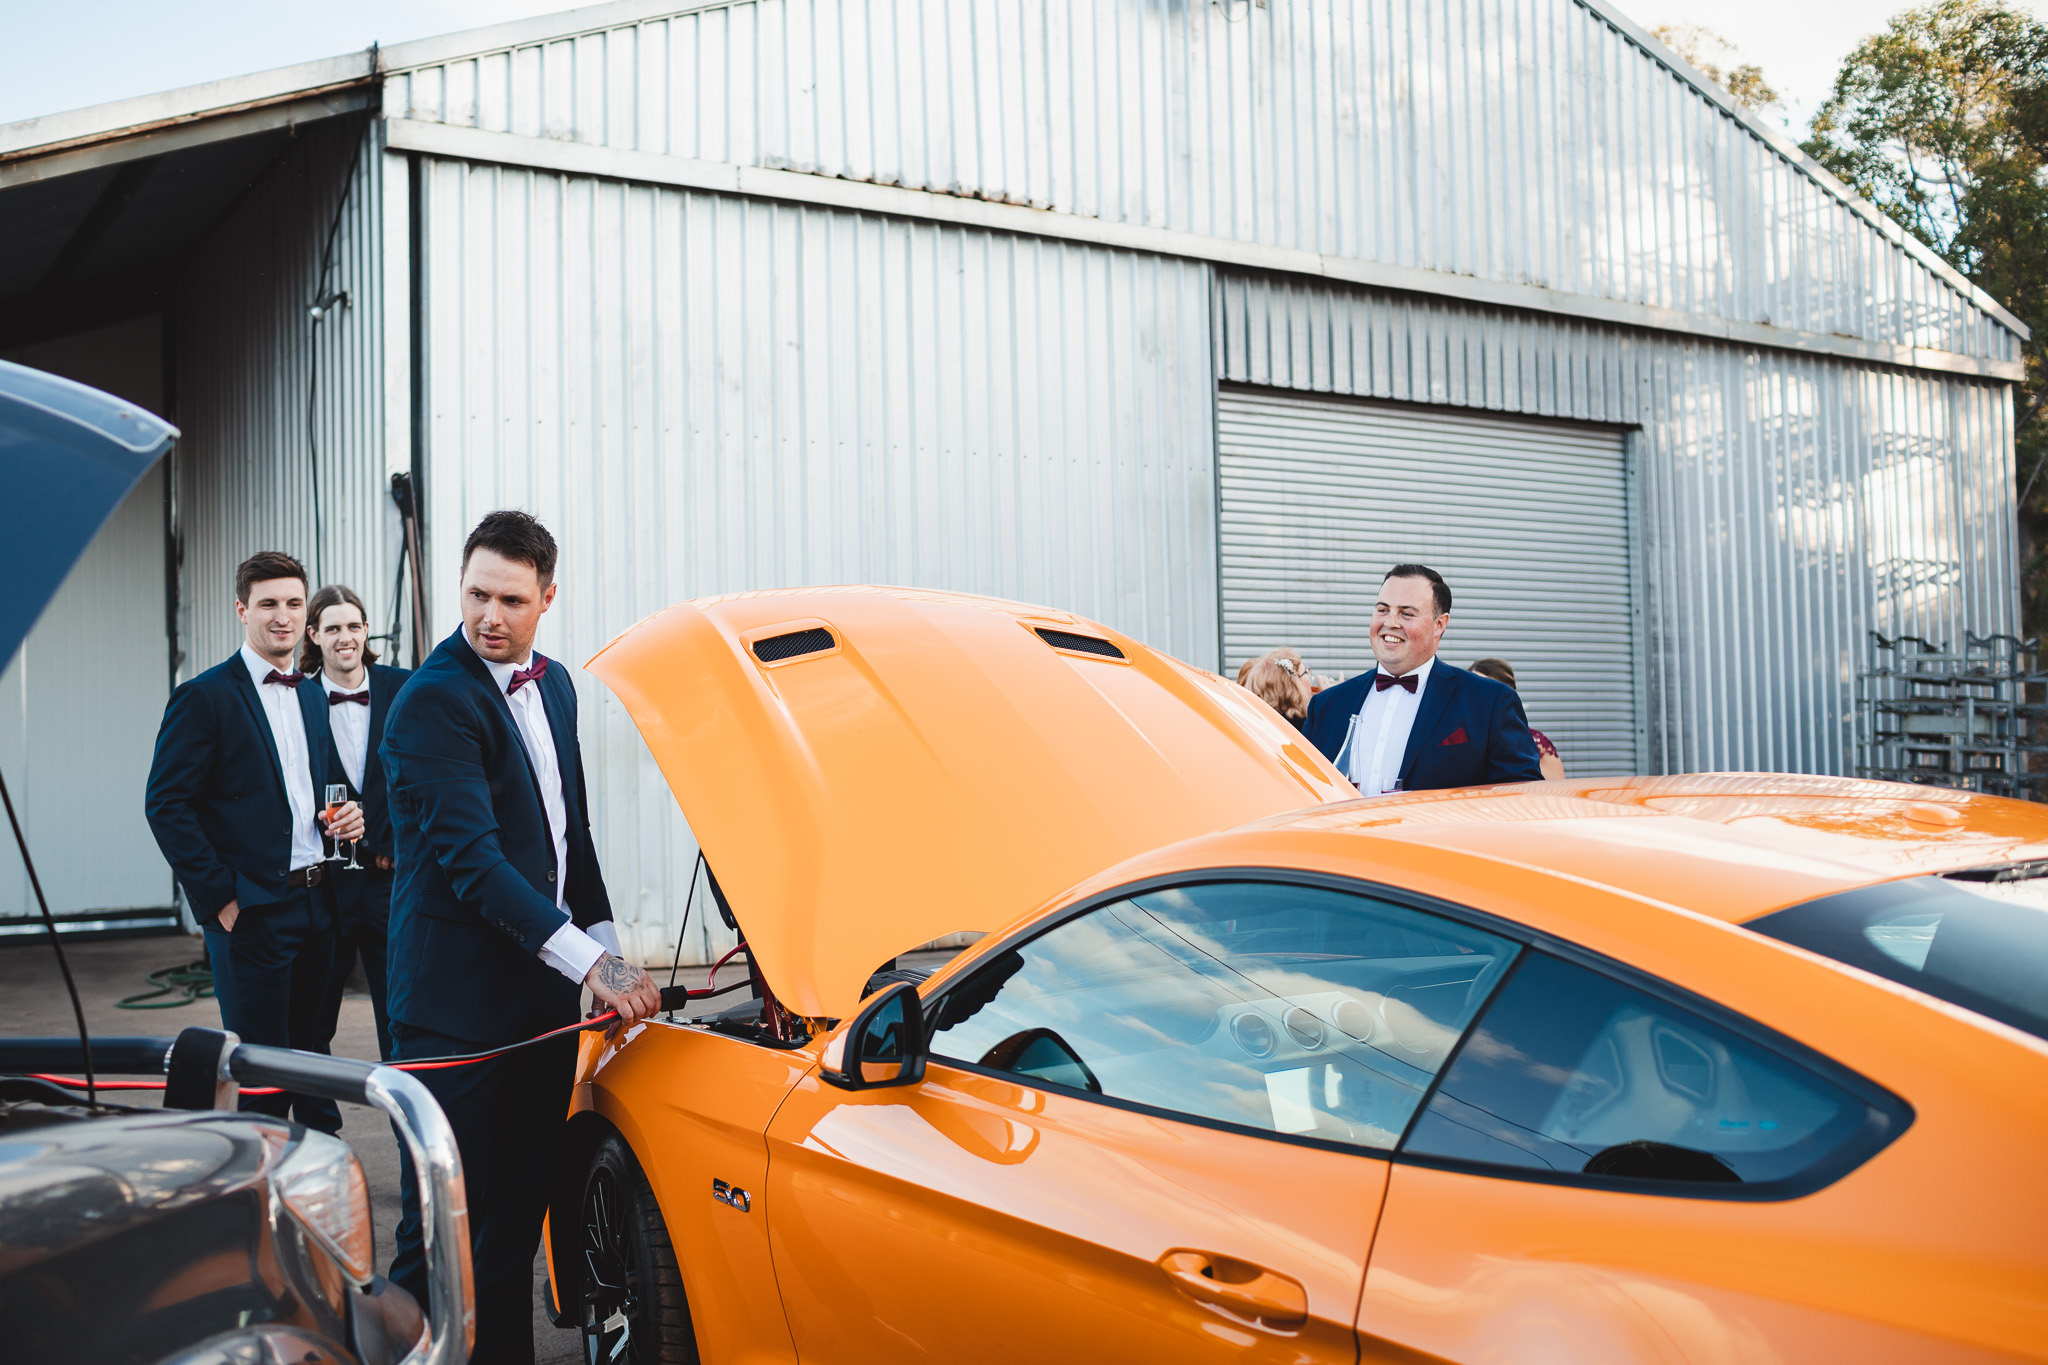 Groom and groomsmen jumping starting yellow Mustang after the car battery went flat during the wedding ceremony at Happs Wines